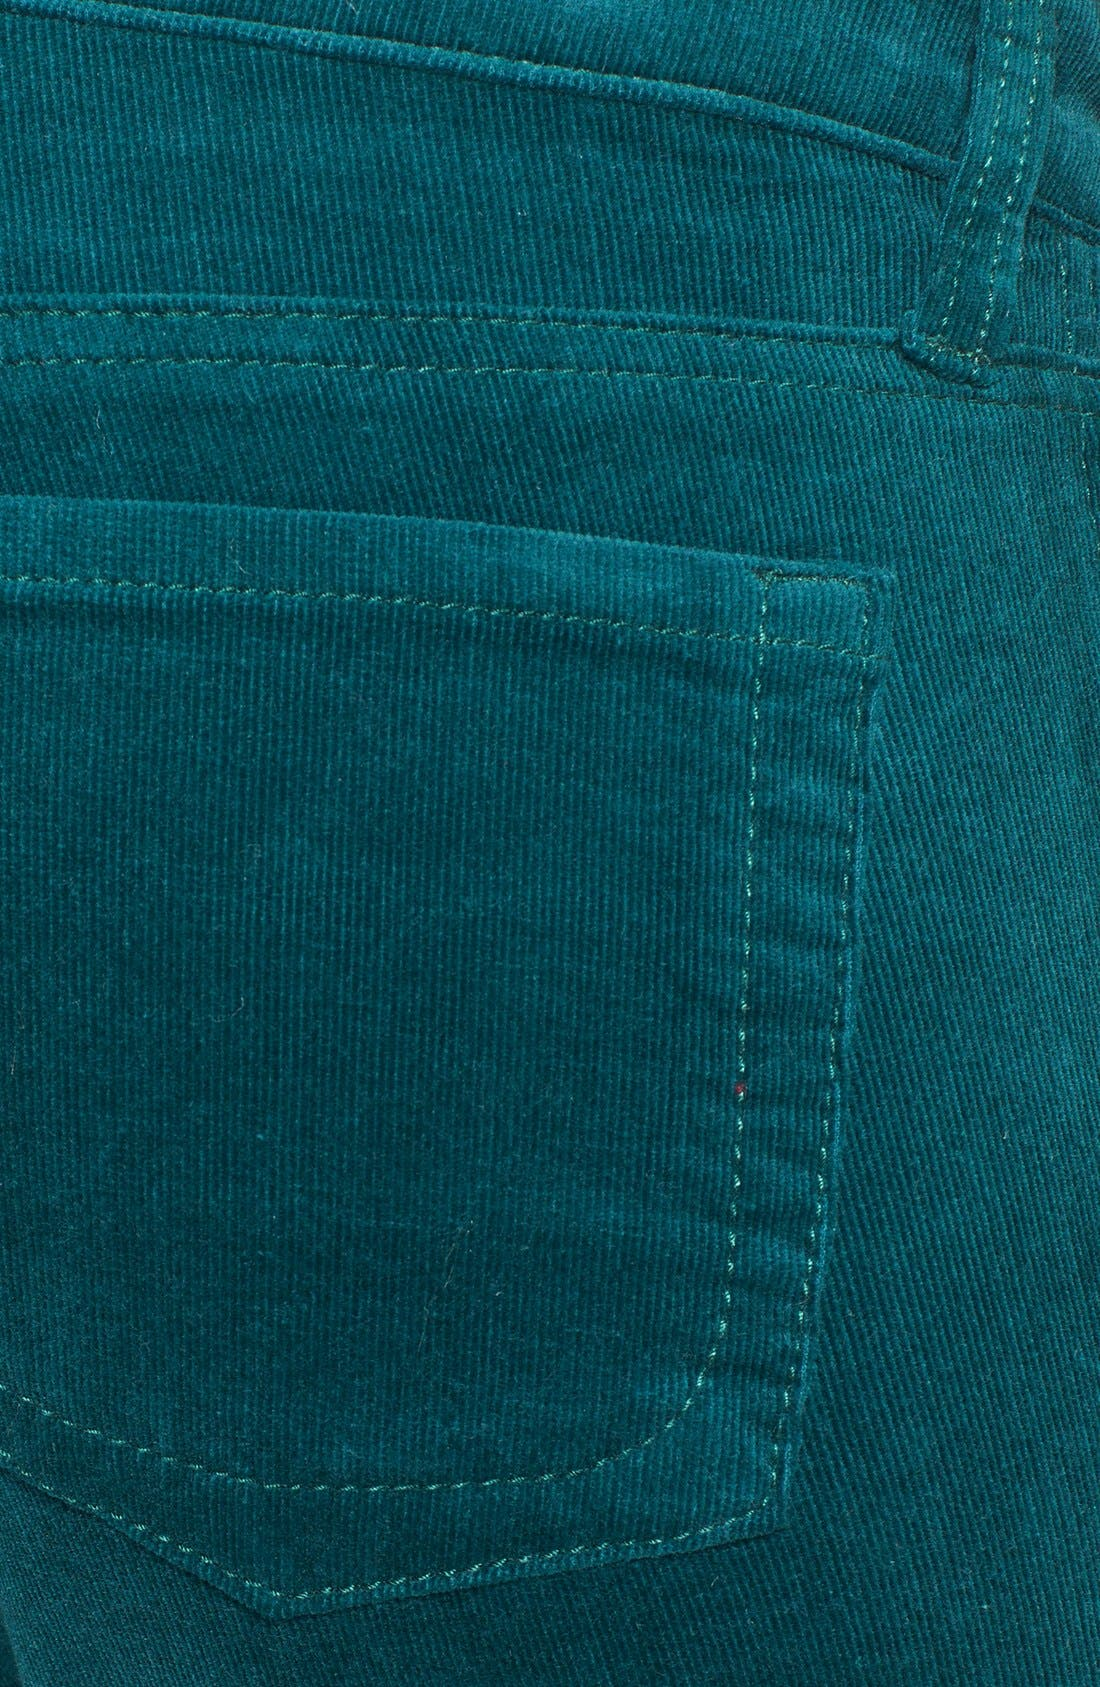 Baby Bootcut Corduroy Jeans,                             Alternate thumbnail 69, color,